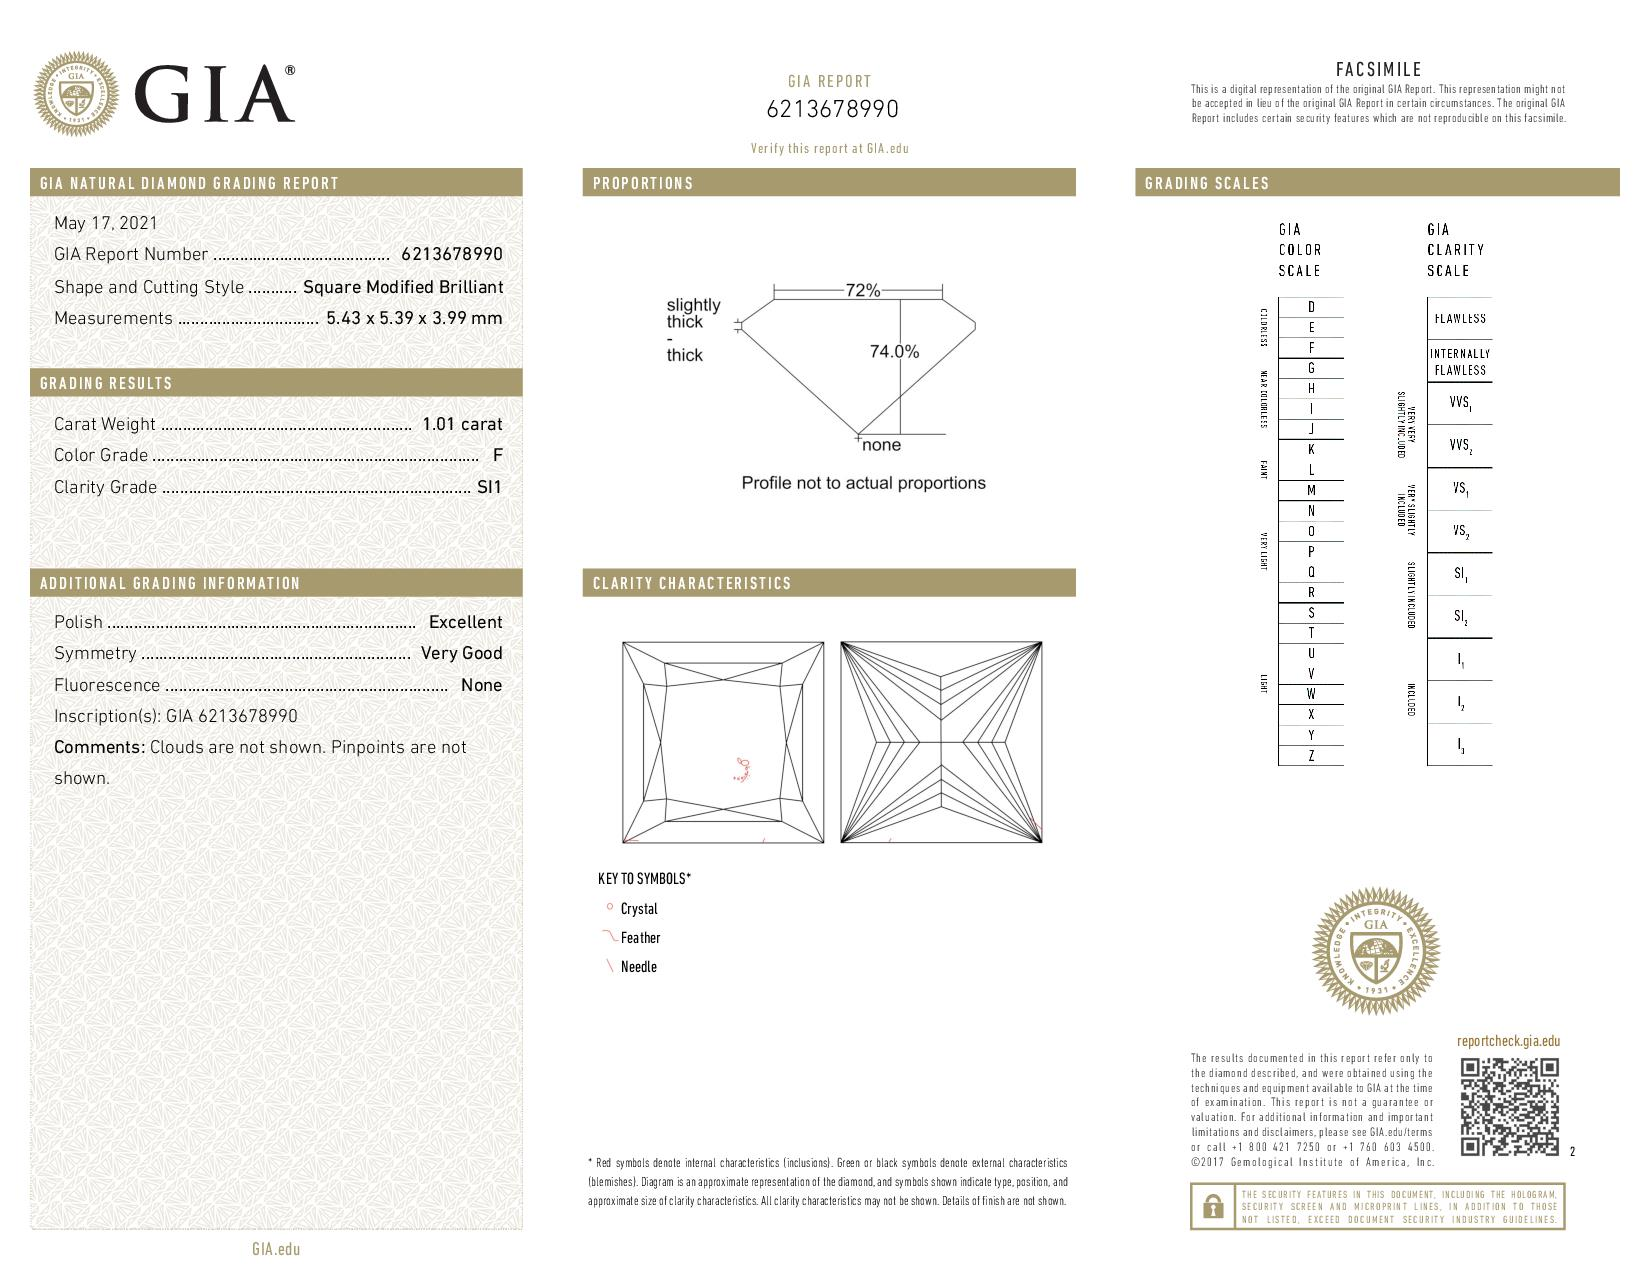 This is a 1.01 carat princess shape, F color, SI1 clarity natural diamond accompanied by a GIA grading report.